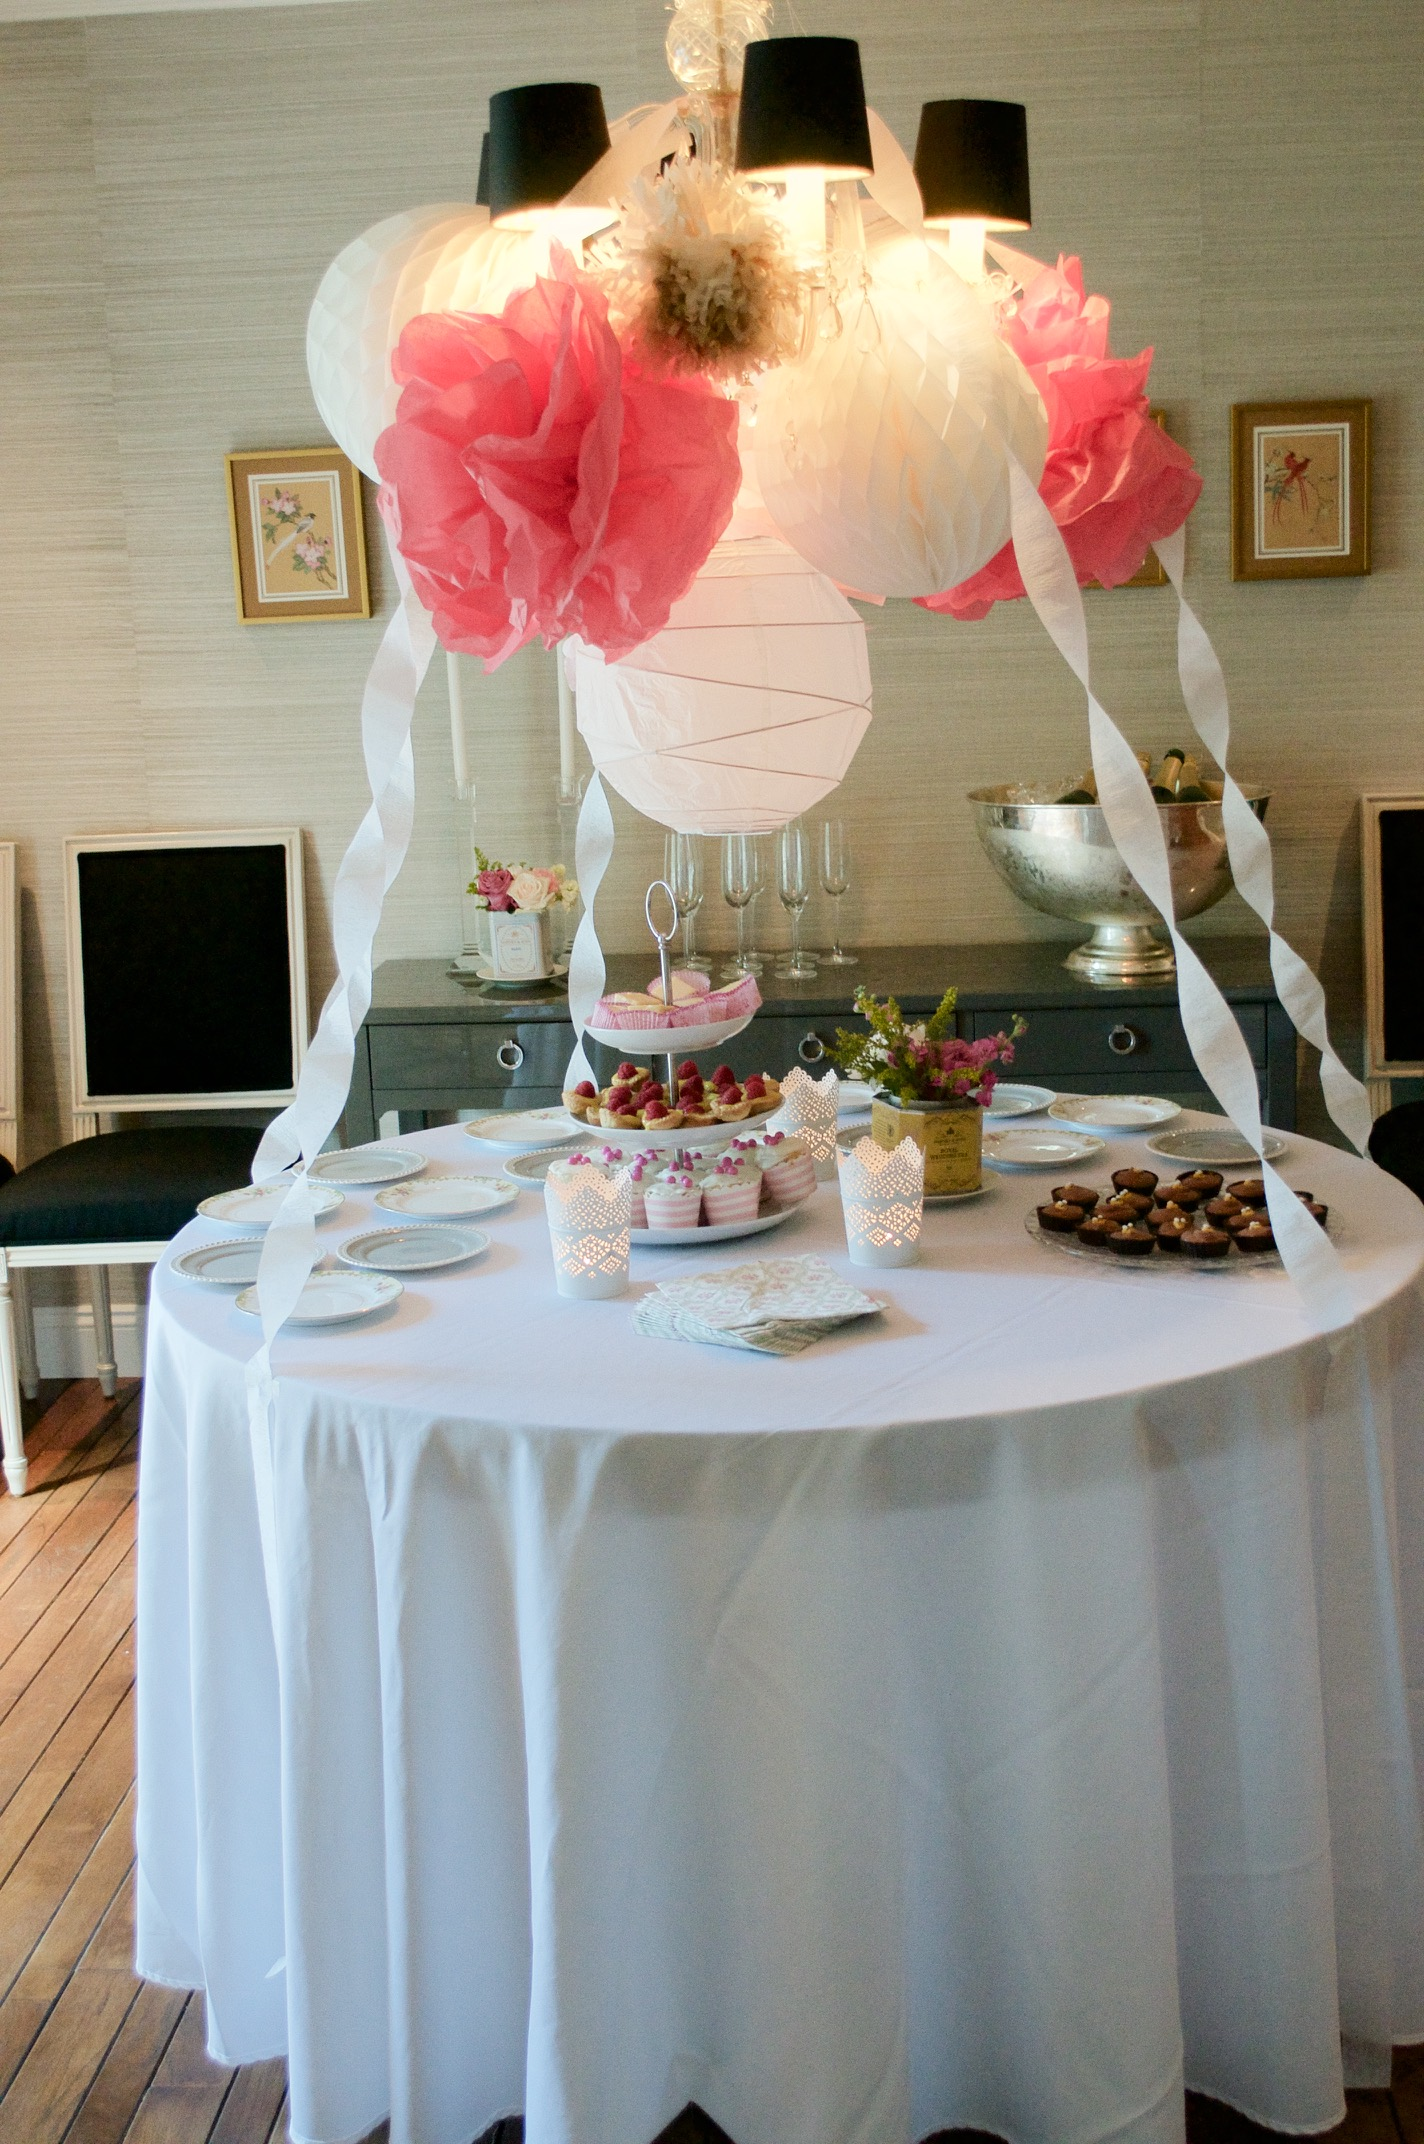 A pom pom and paper lantern display over the dessert table